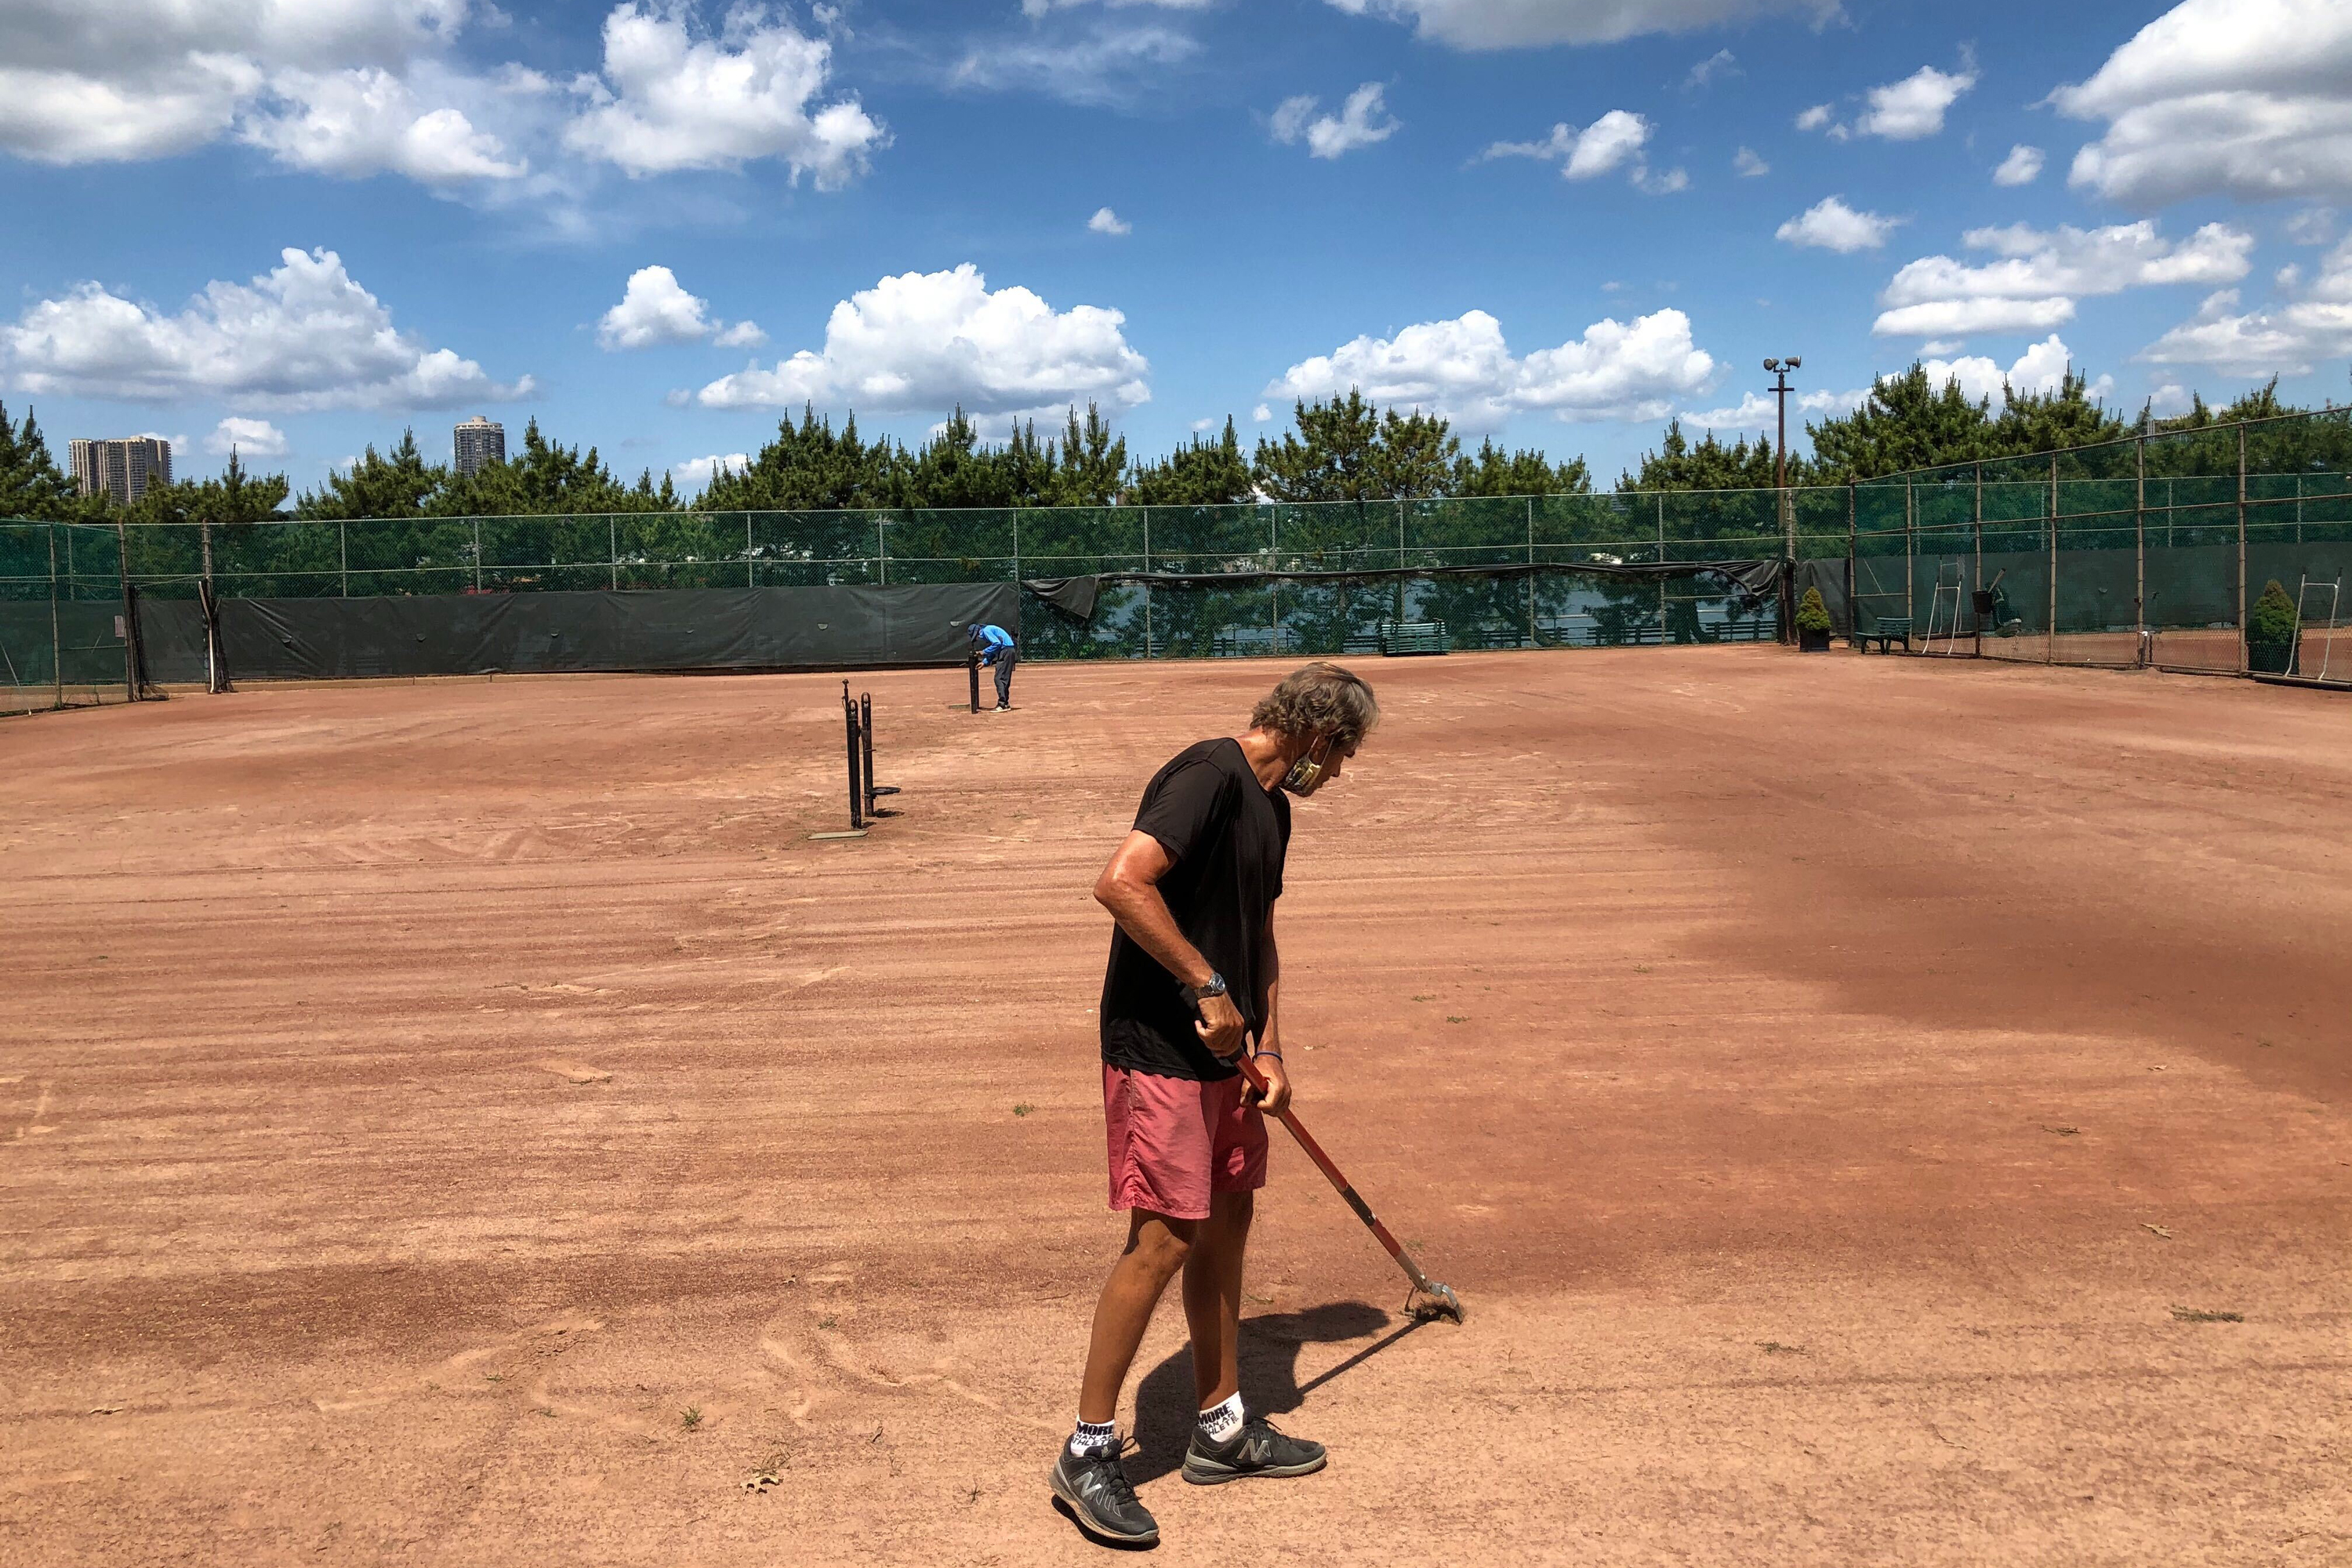 Riverside Clay Tennis Association Associate Director Tim Heath cleans the courts near West 96th Street in preparation for its opening, June 26, 2020.